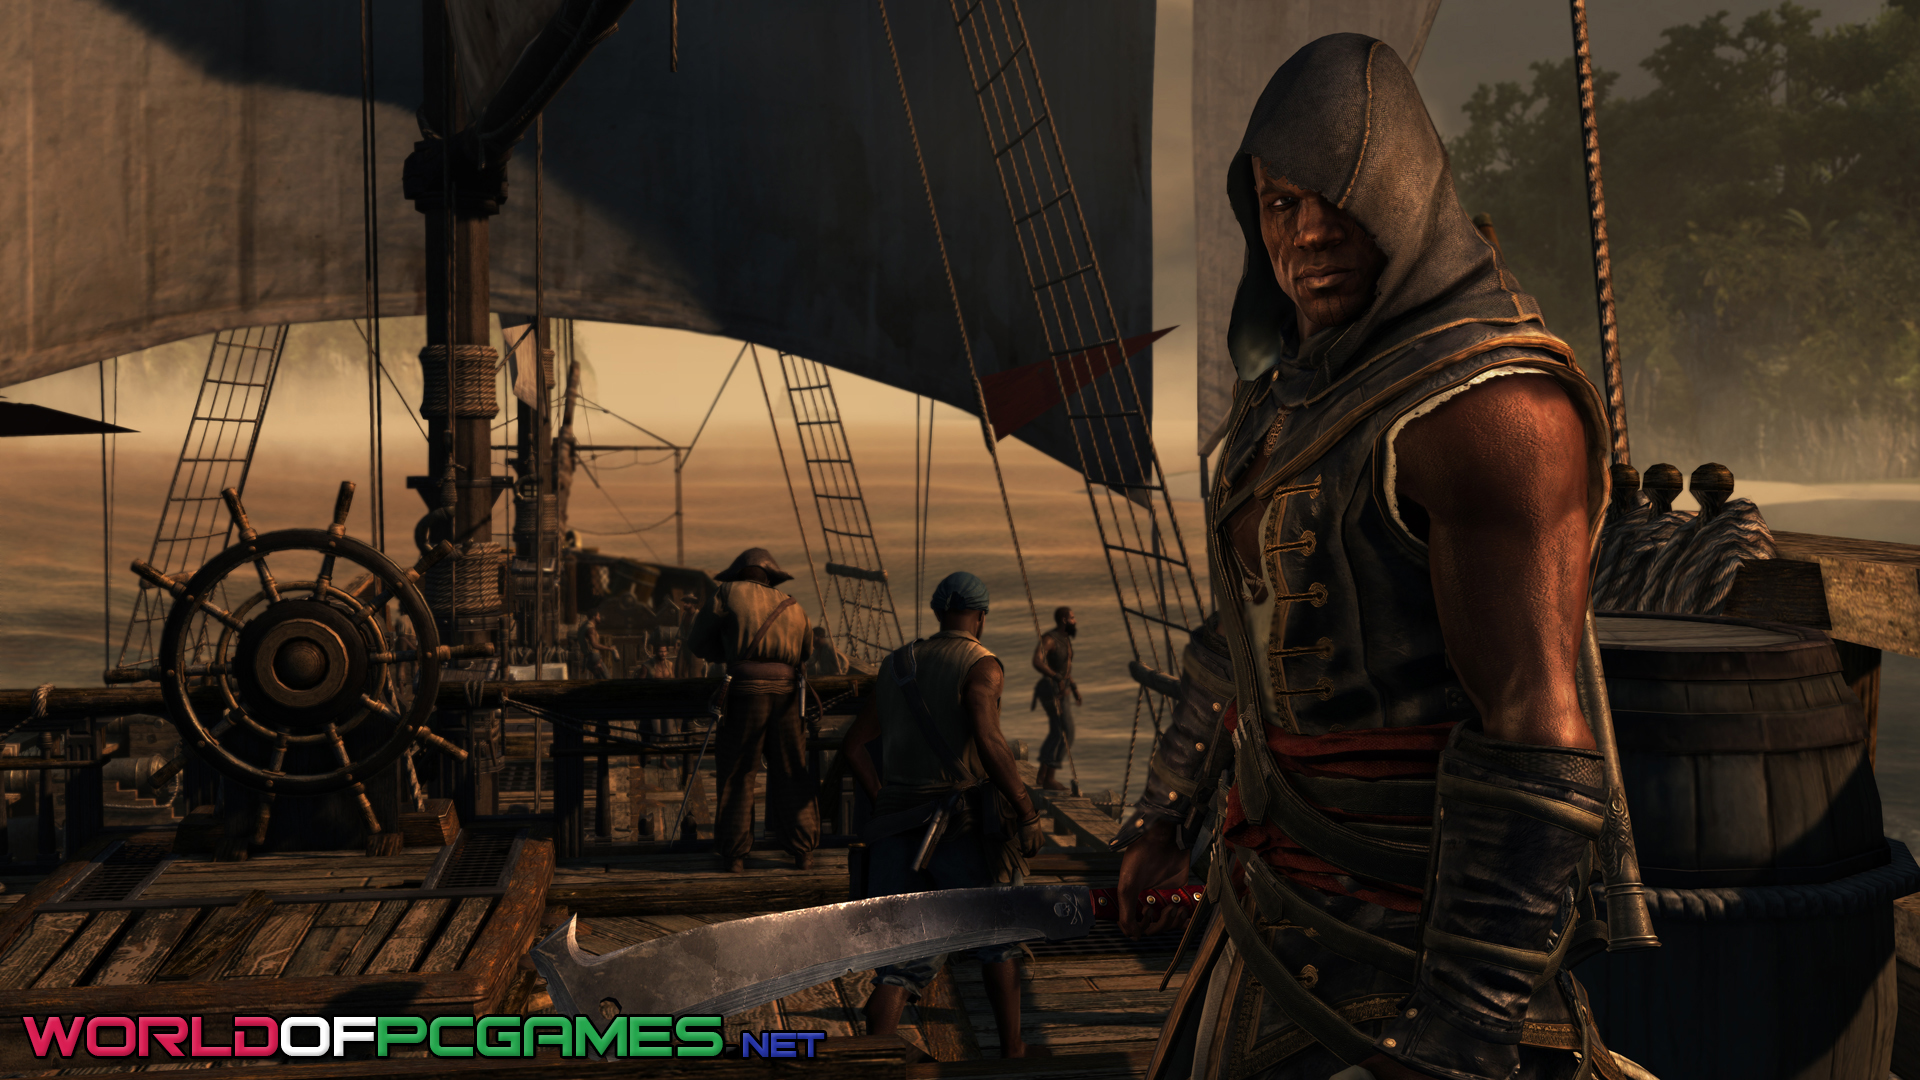 Assassins Creed Freedom Cry Free Download By Worldofpcgames.net